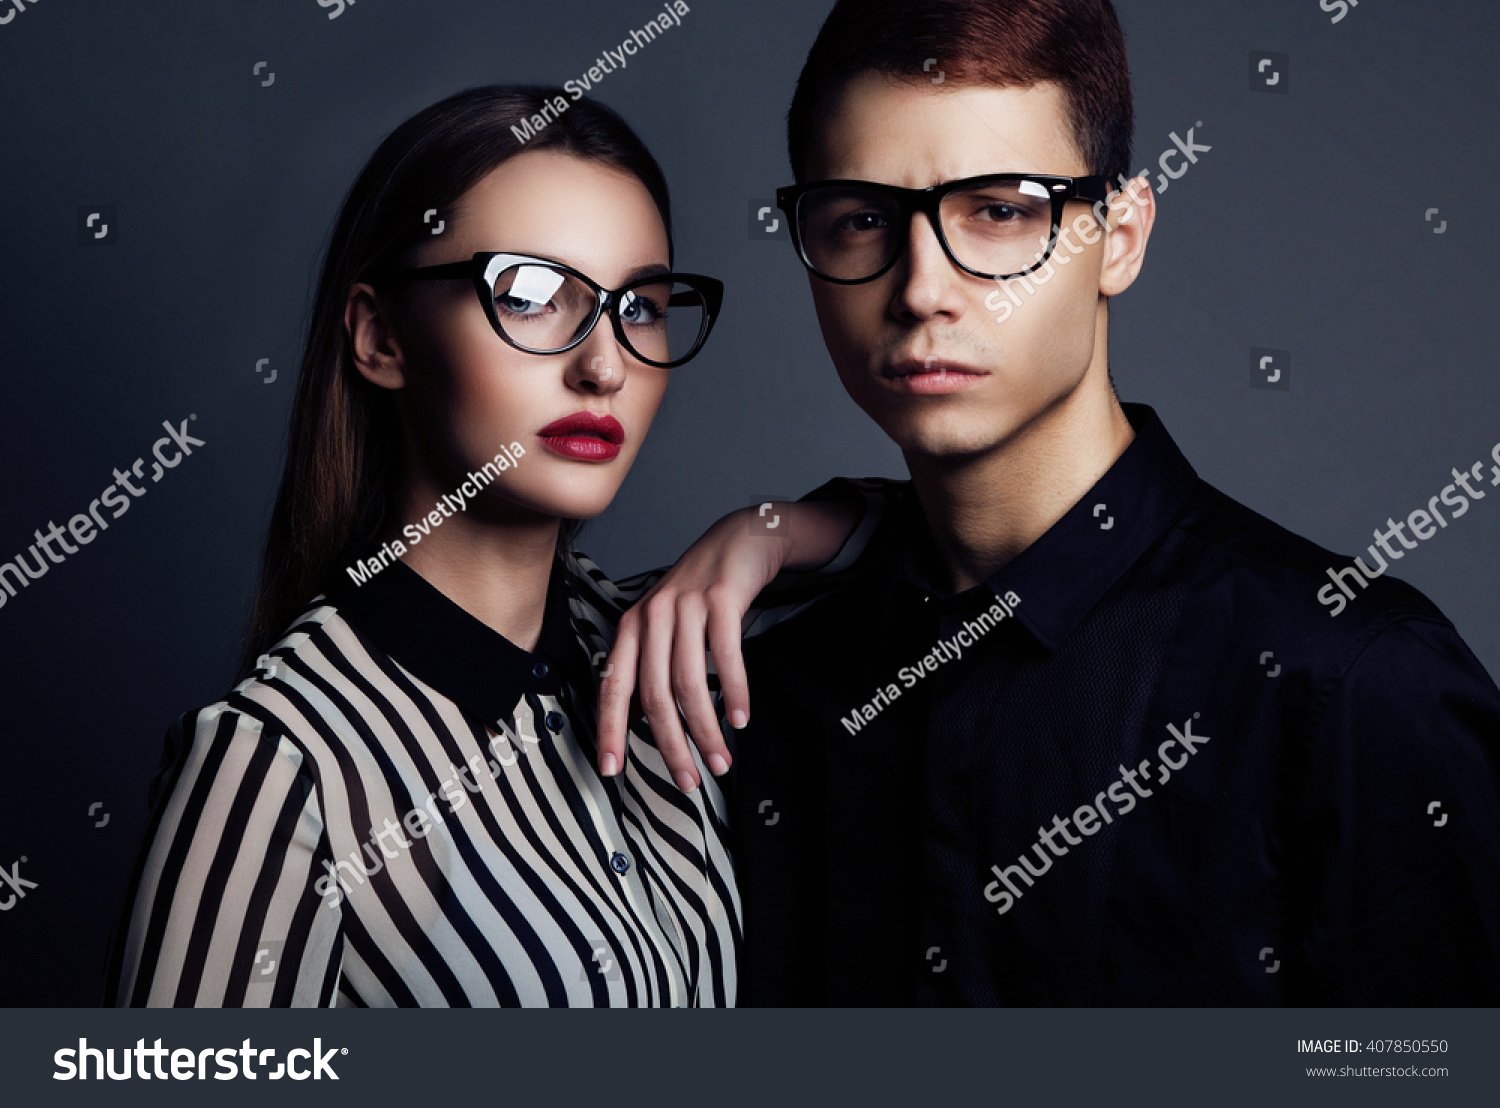 01865f74a4e Fashion models couple wearing sunglasses. Sexy woman and handsome young man portrait  over dark background